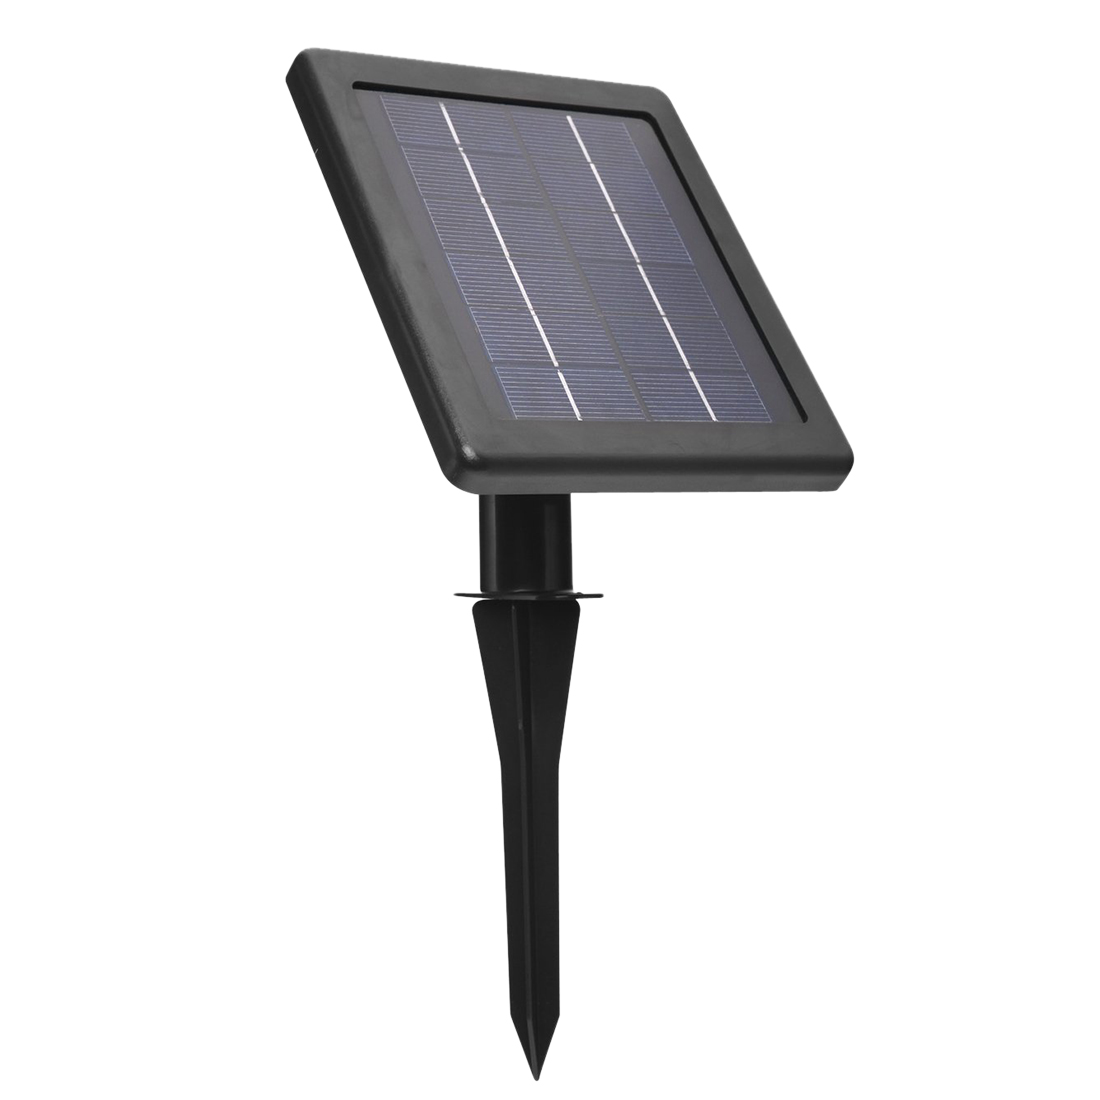 Rechargeable Waterproof Solar Powered 30 LED Spot Light White Lamp with Lithium Battery Inside for Lawn, Garden, Road, Hotel youoklight 0 5w 3 led white light mini waterproof solar powered fence garden lamp black